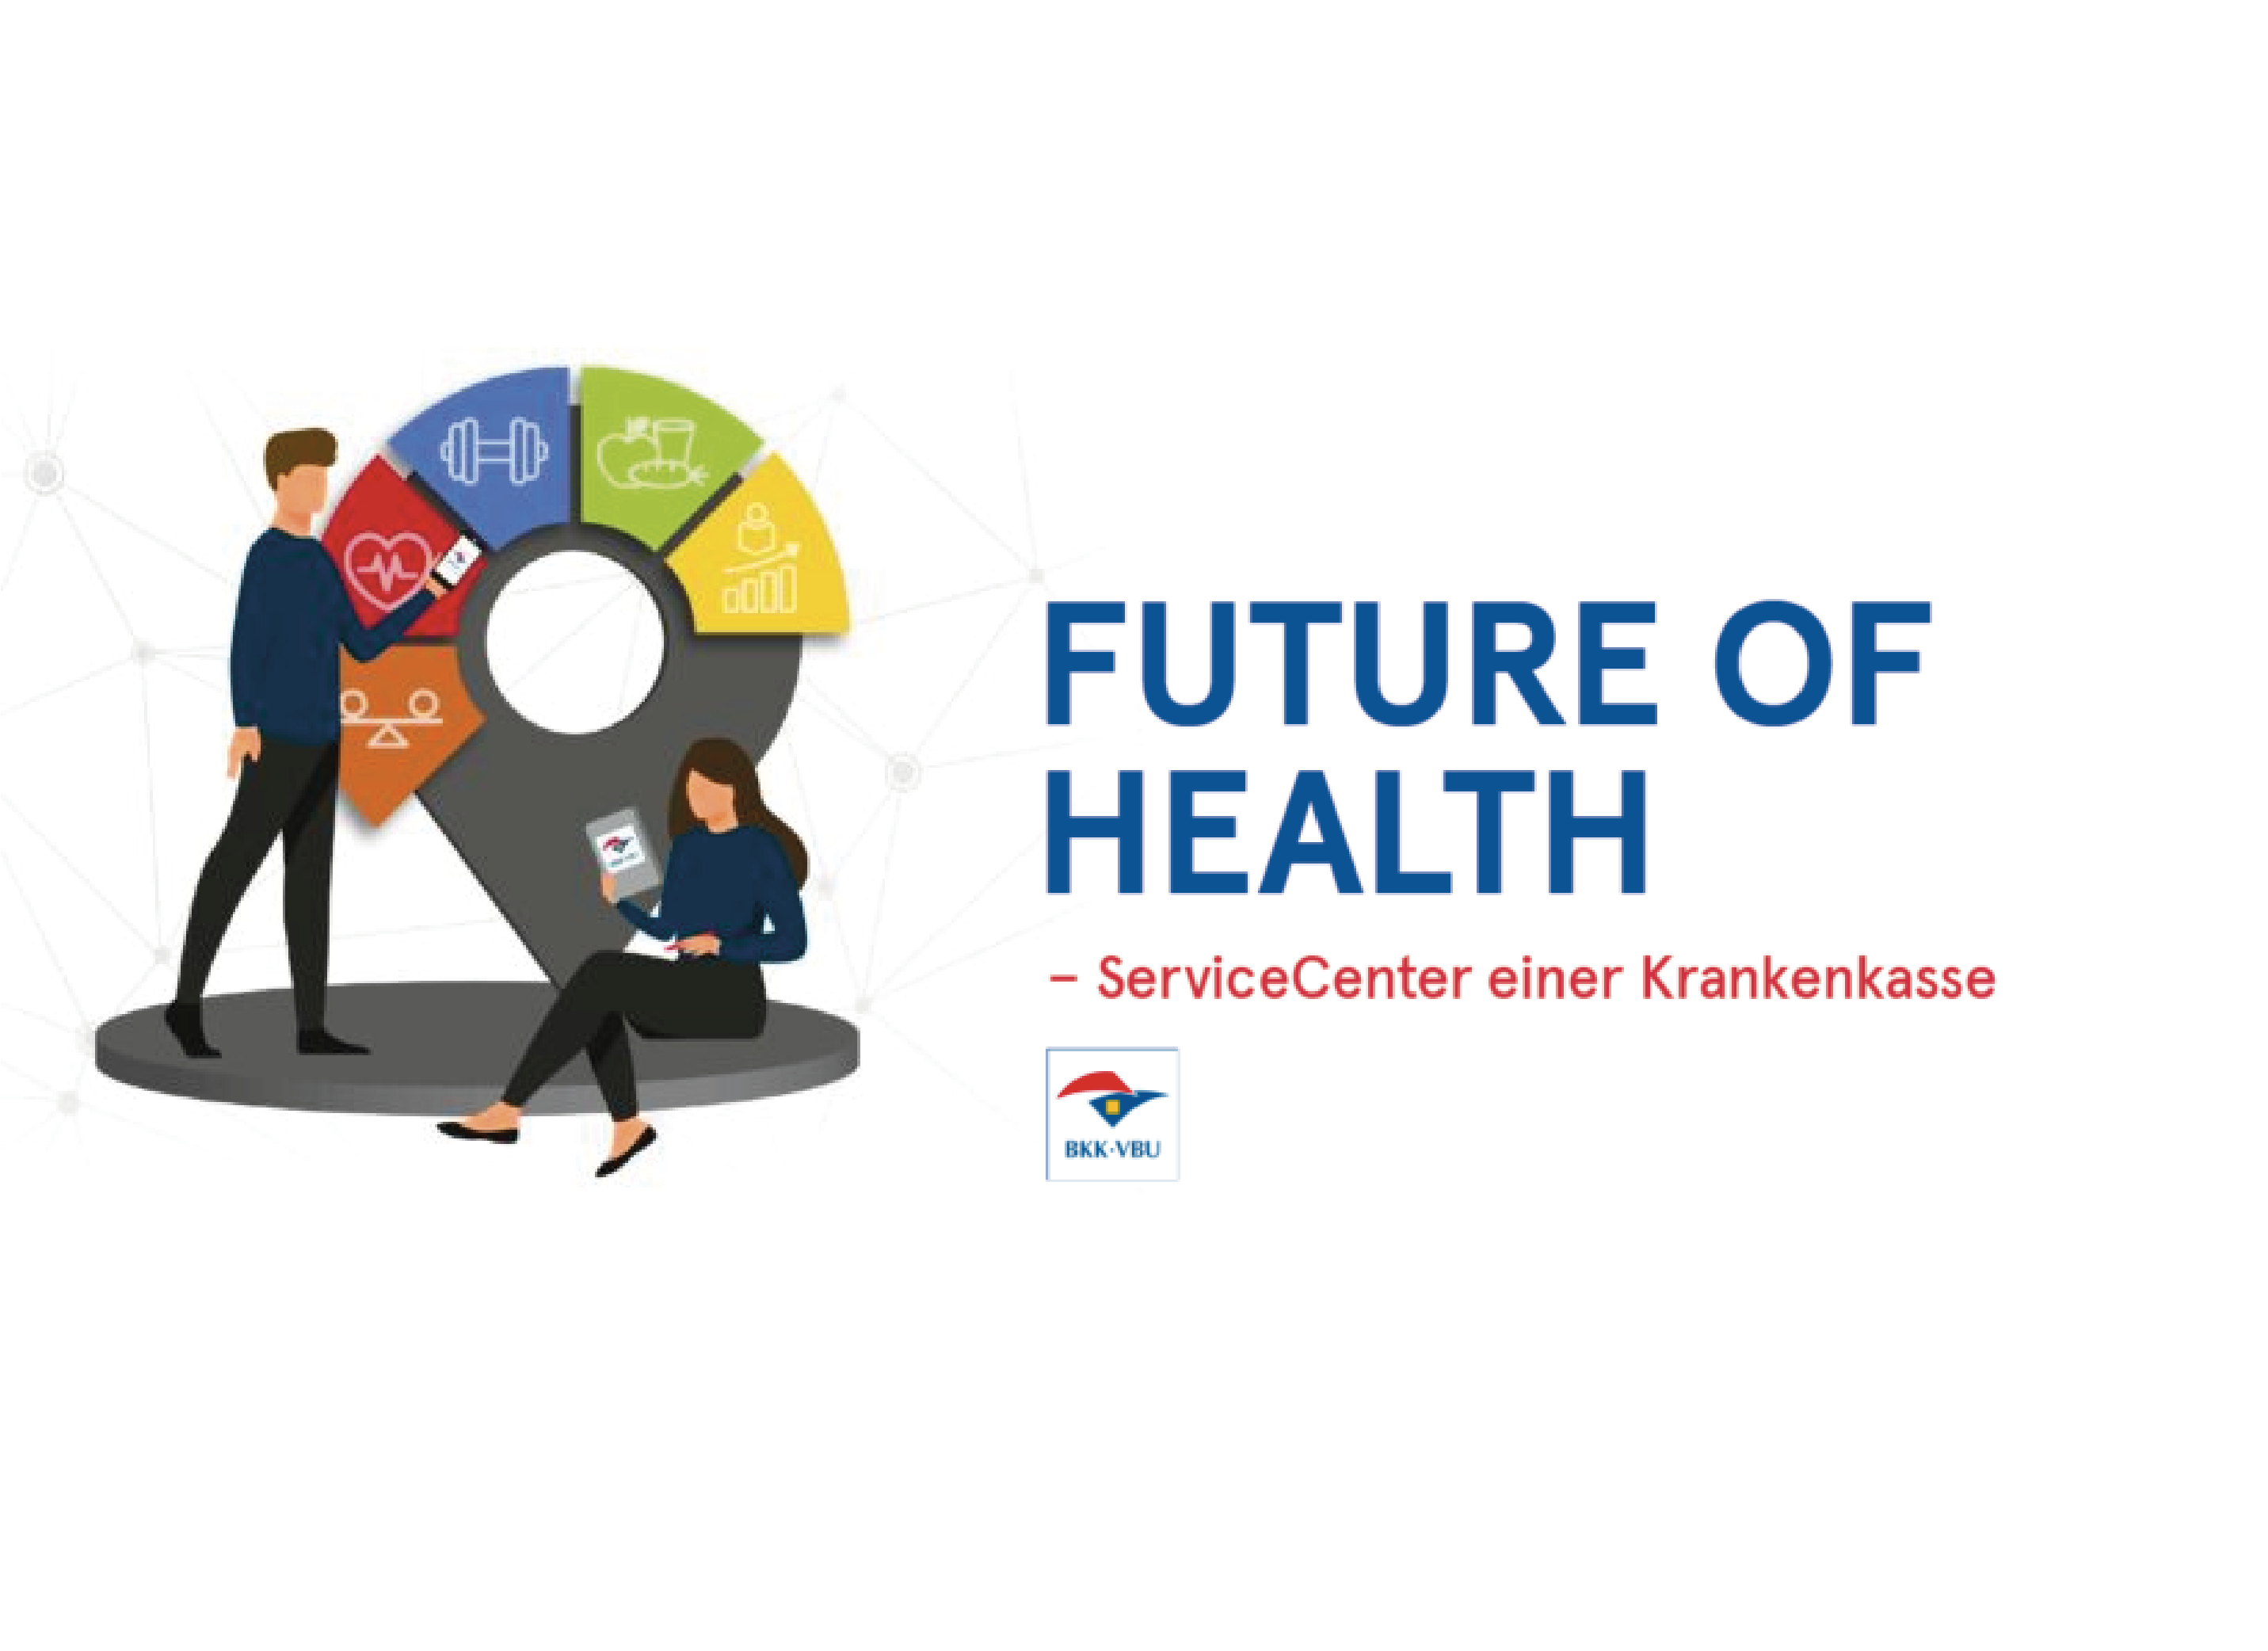 Future of Health – ServiceCenter einer Krankenkasse